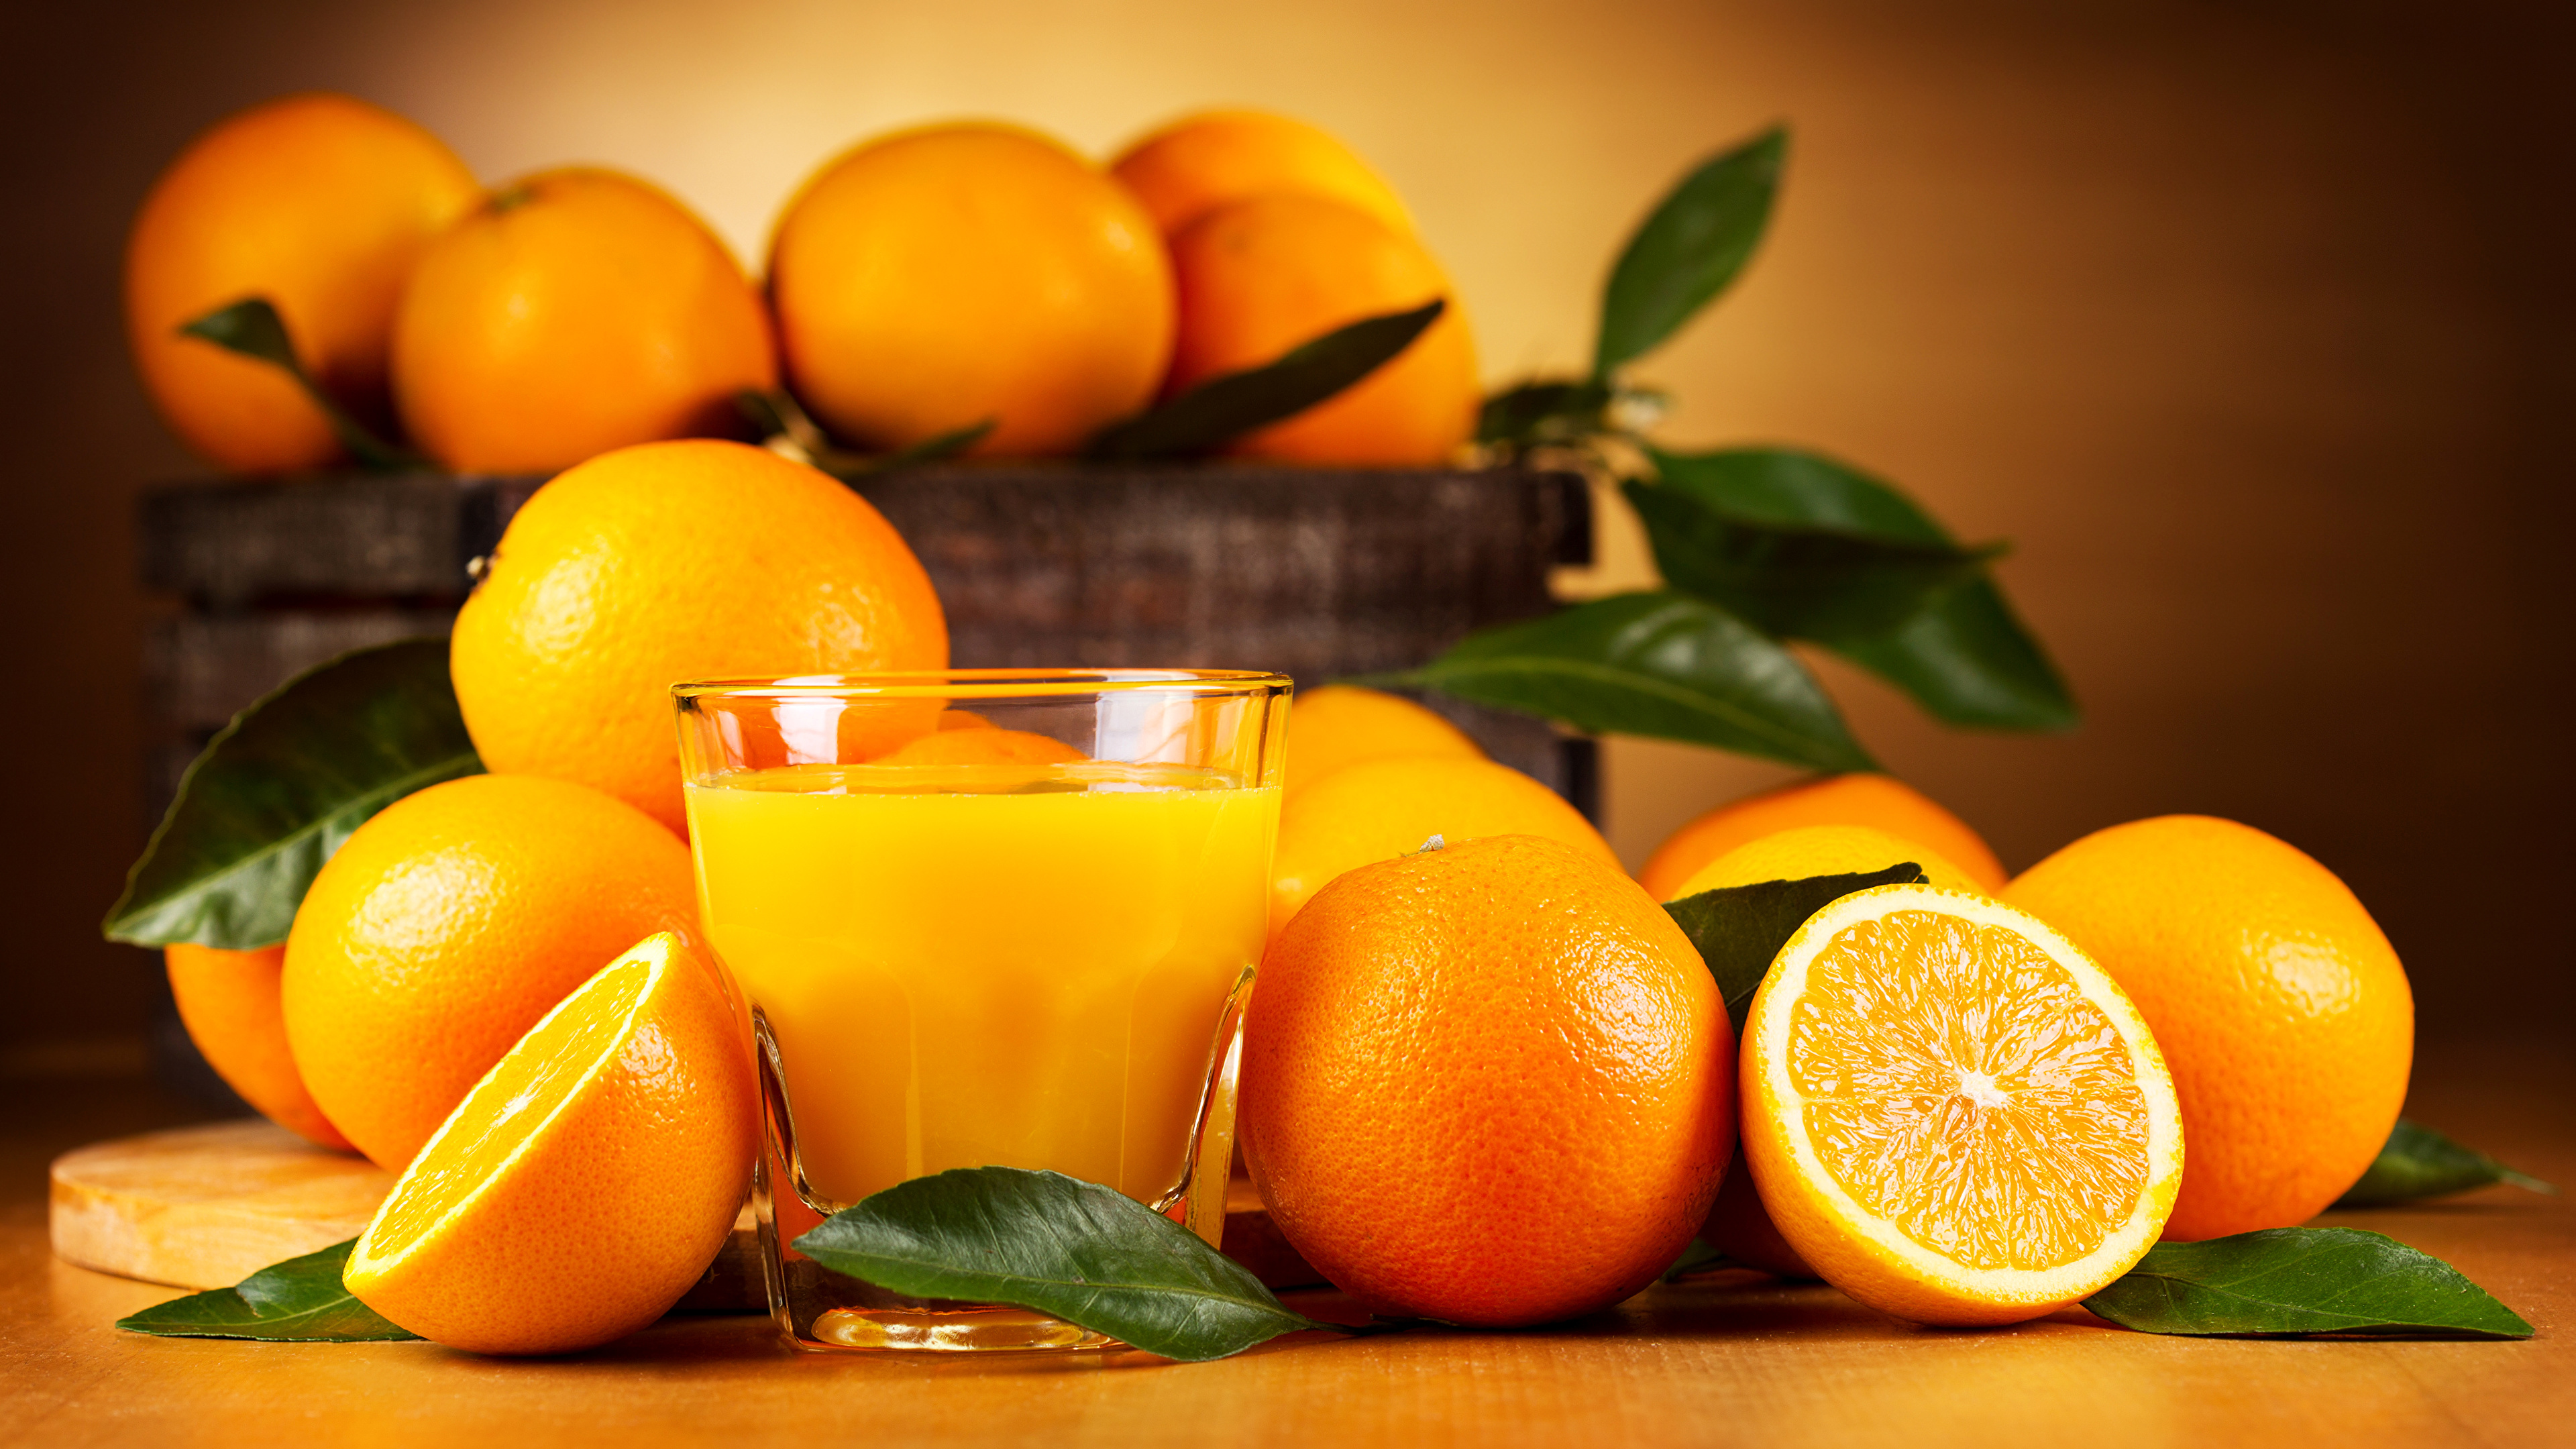 Citrus_Orange_fruit_Juice_Highball_glass